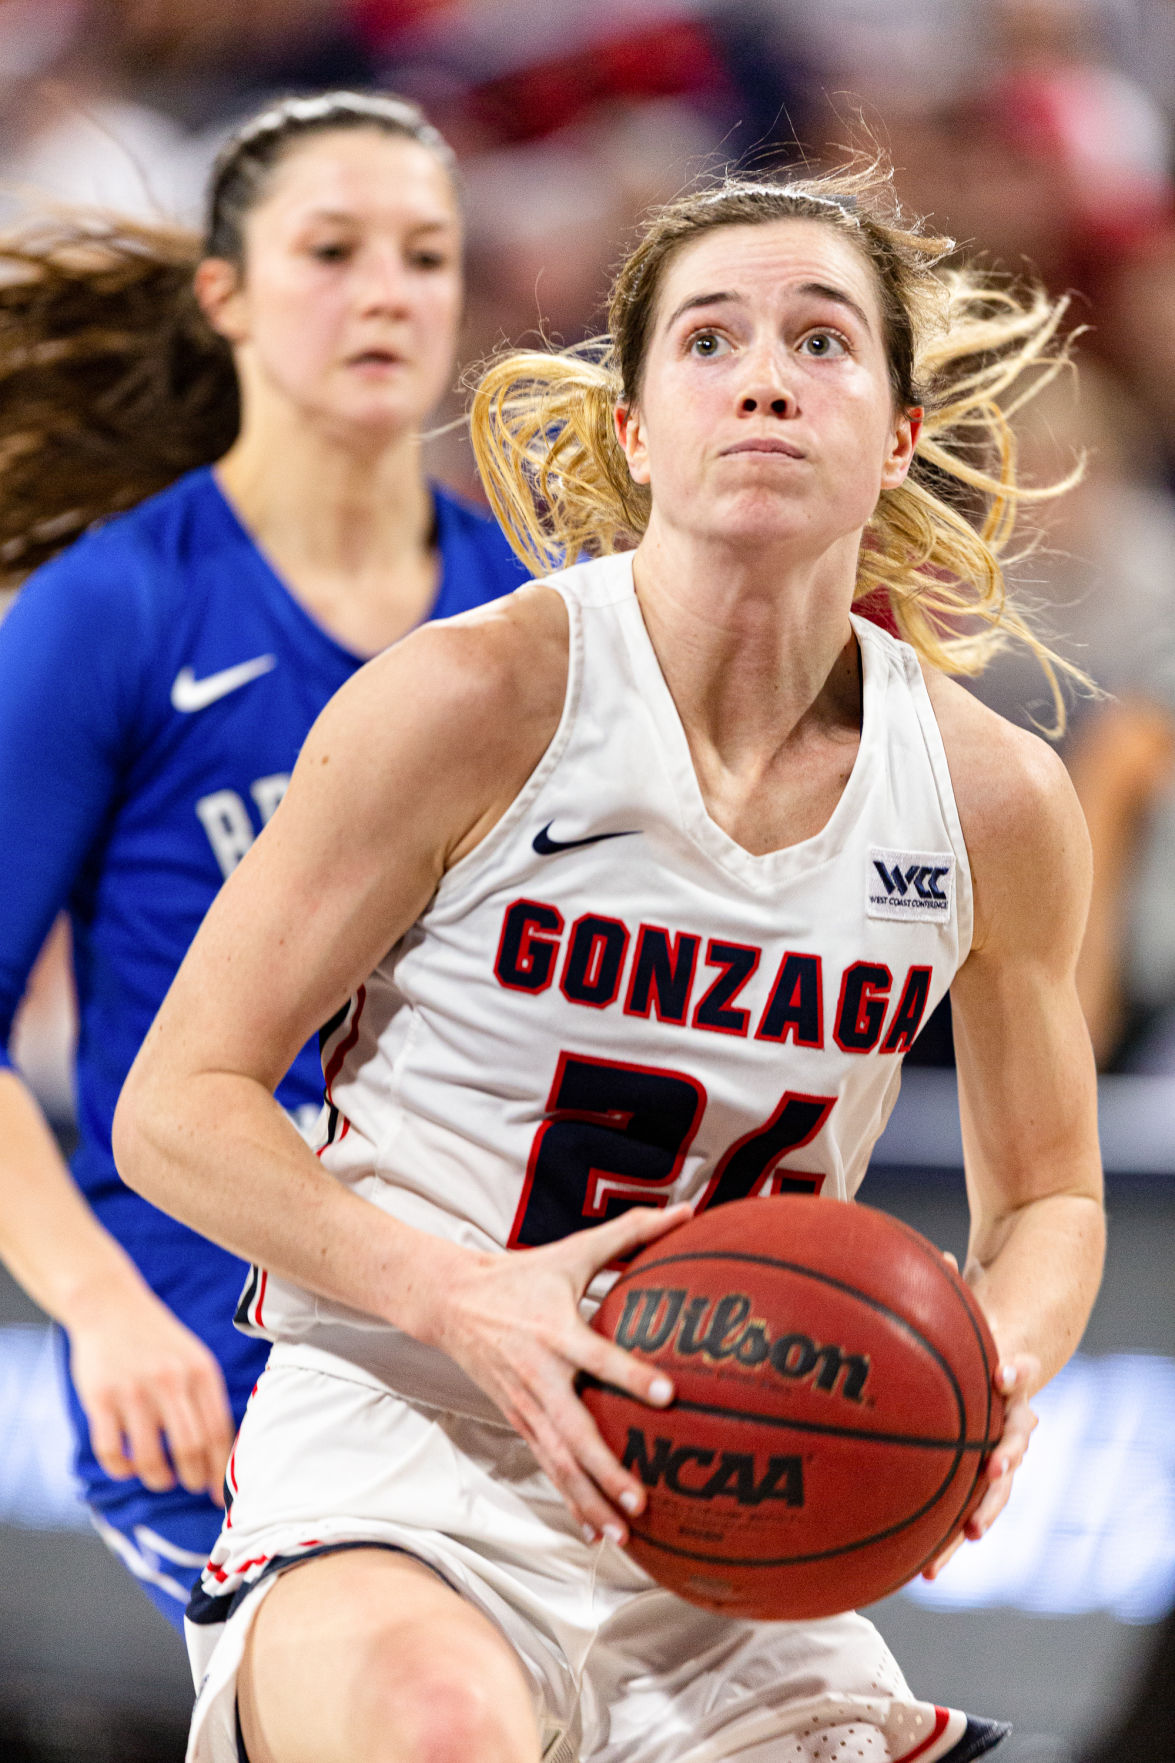 Women's basketball: Double losses motivate Gonzaga's drive to win